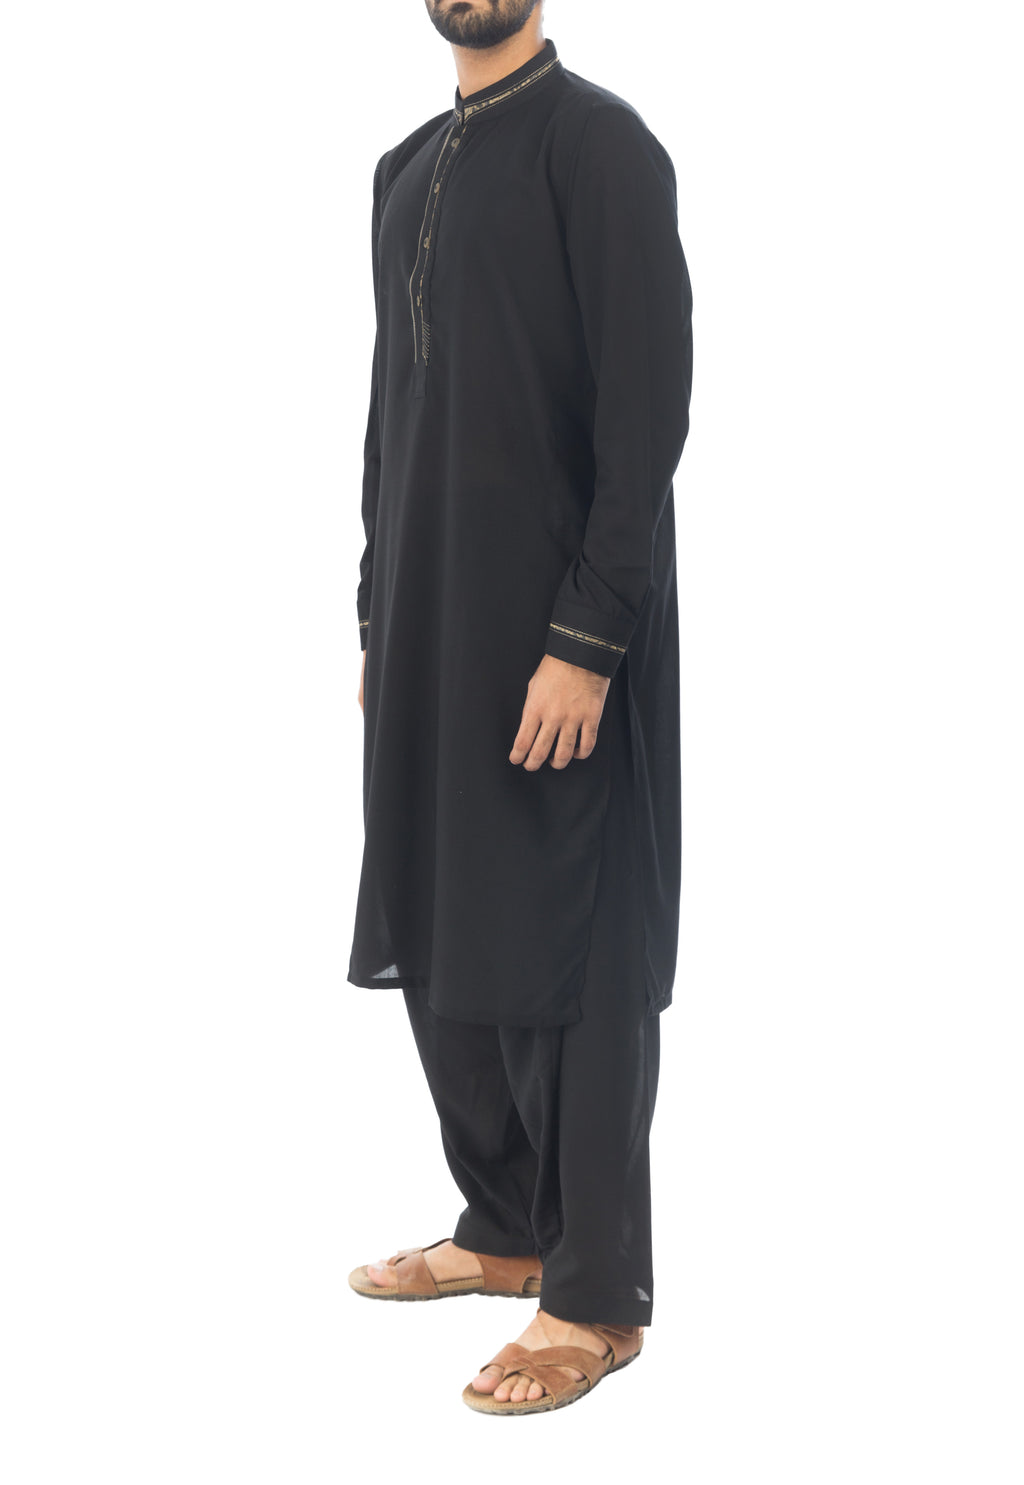 Image of   in Black SKU: RQ-17146-Large-Black